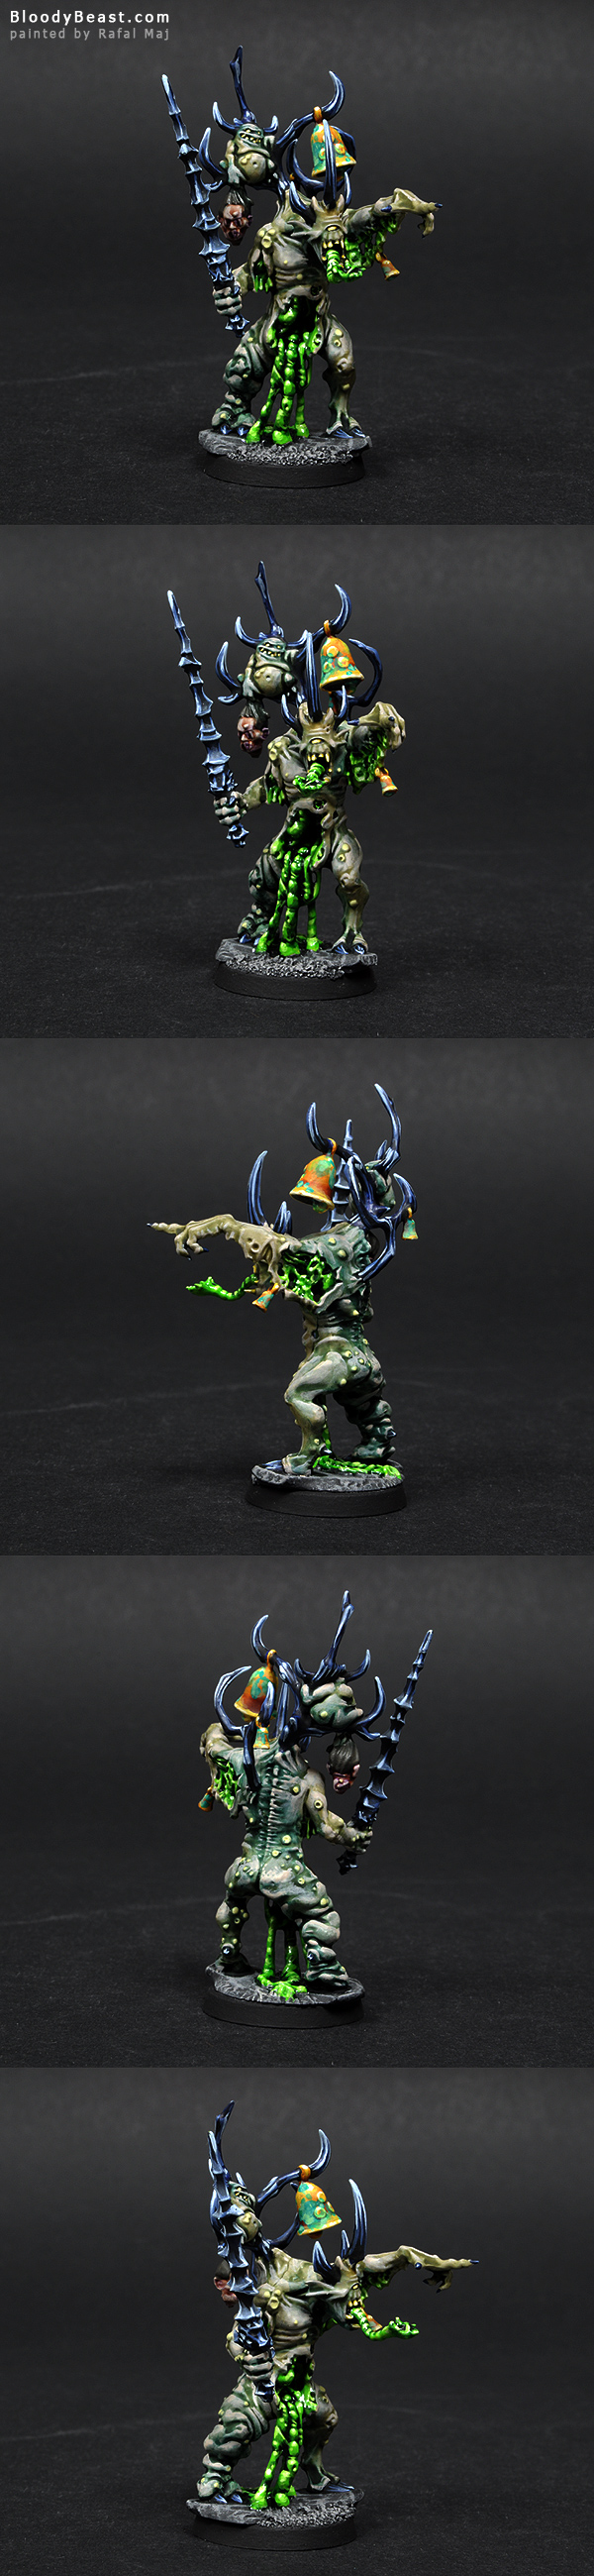 Herald of Nurgle painted by Rafal Maj (BloodyBeast.com)